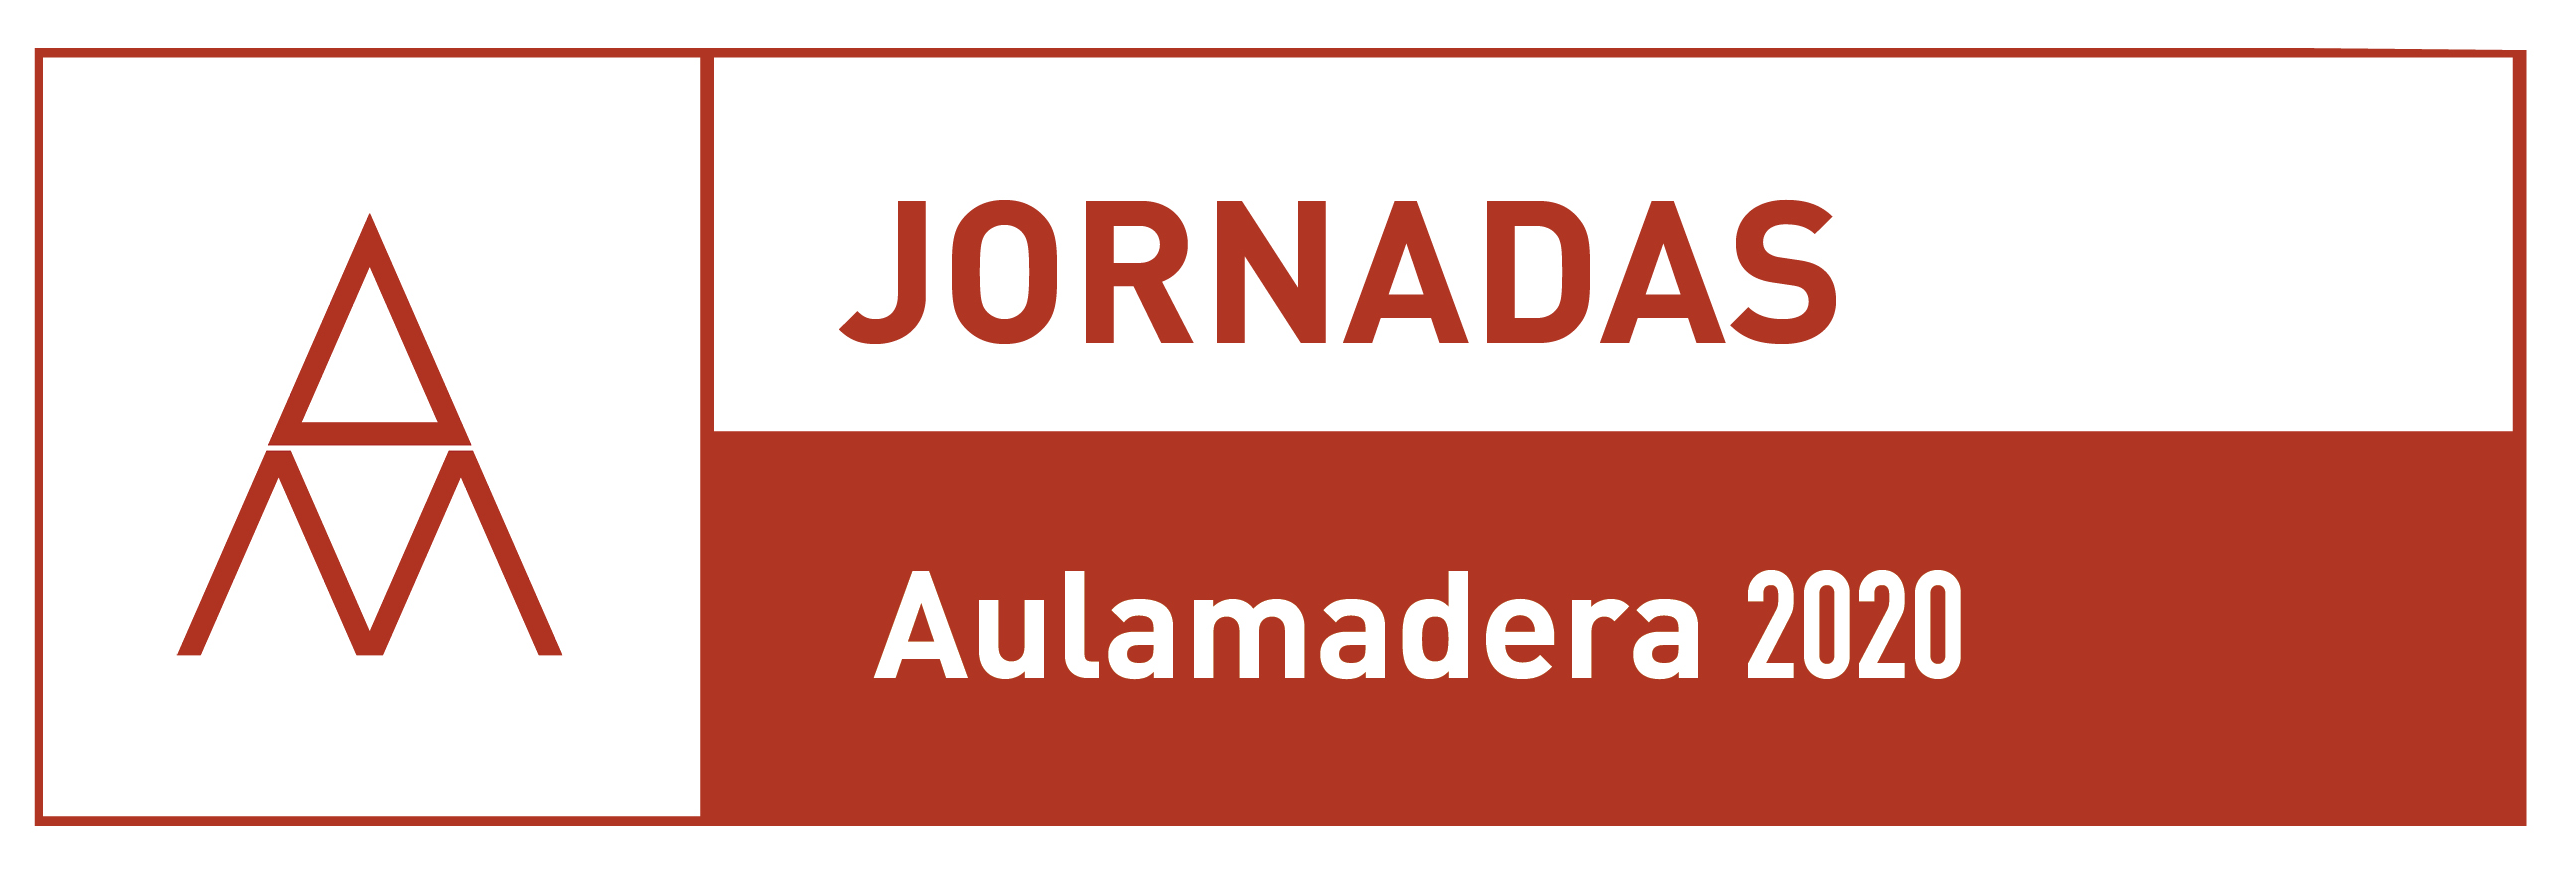 AULAMADERA 2020 disponible en YouTube